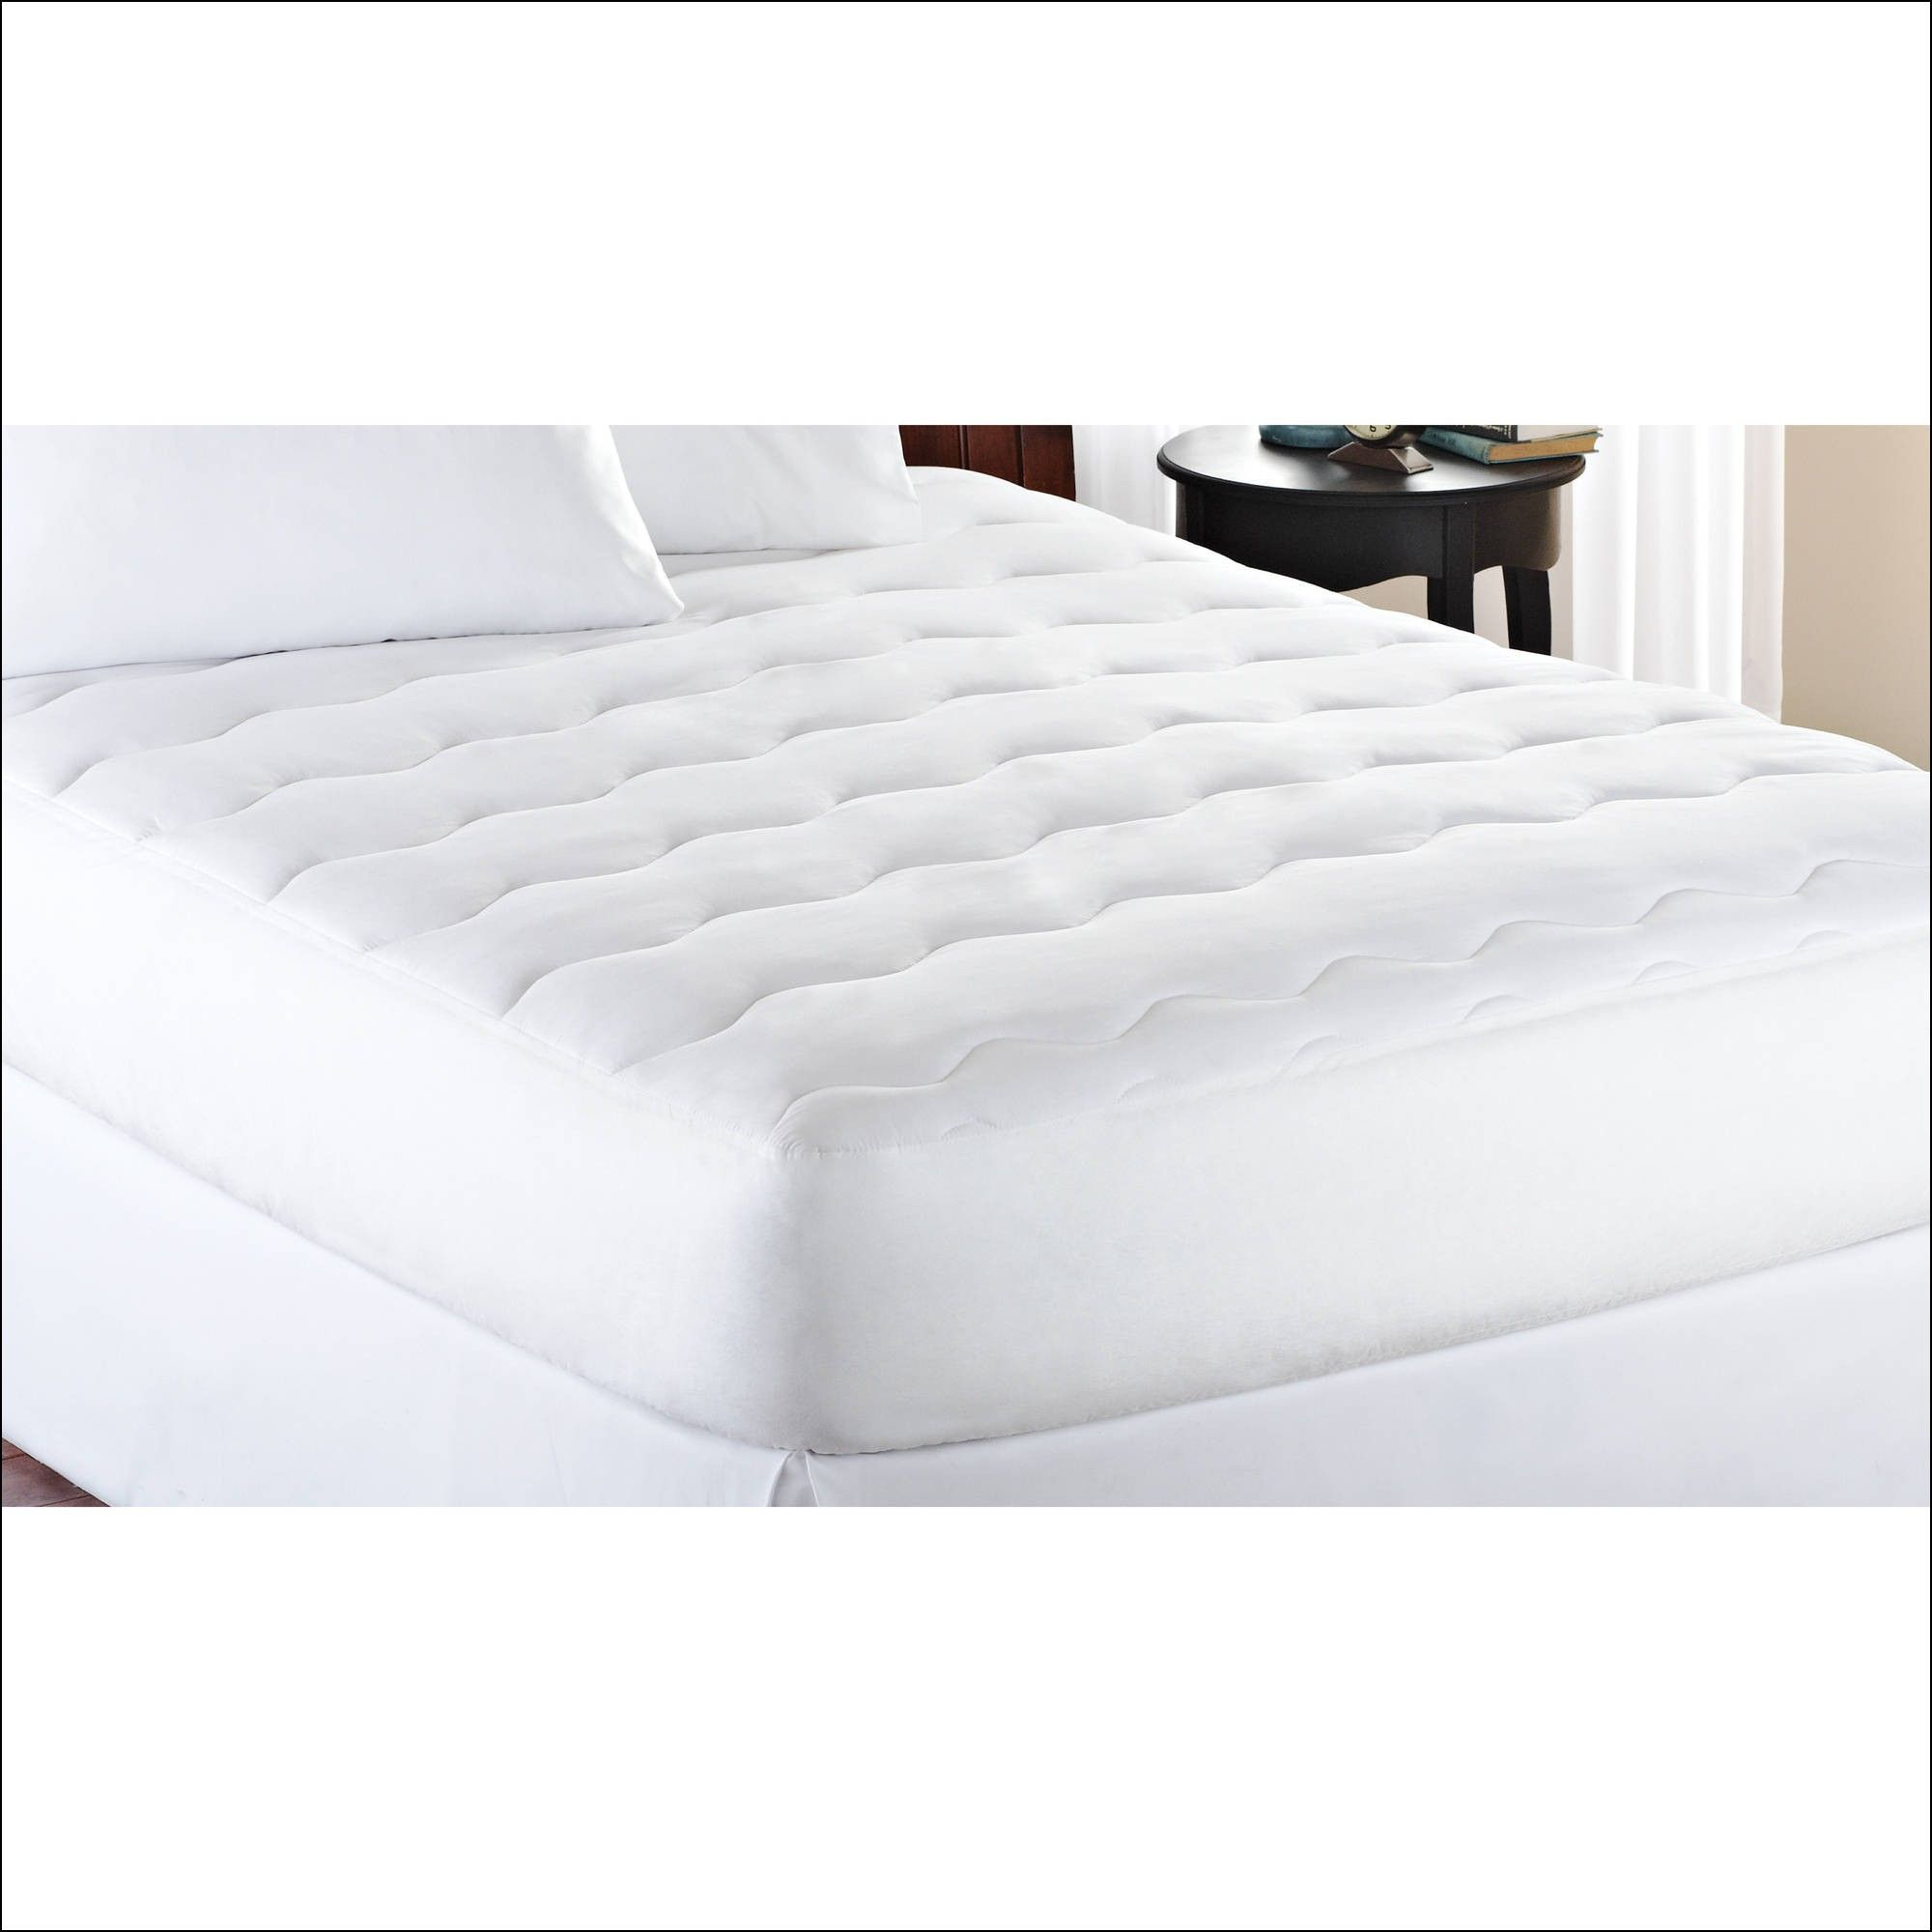 pdx top mattress plush reviews wayfair topper sealy response premium pillow mattresses